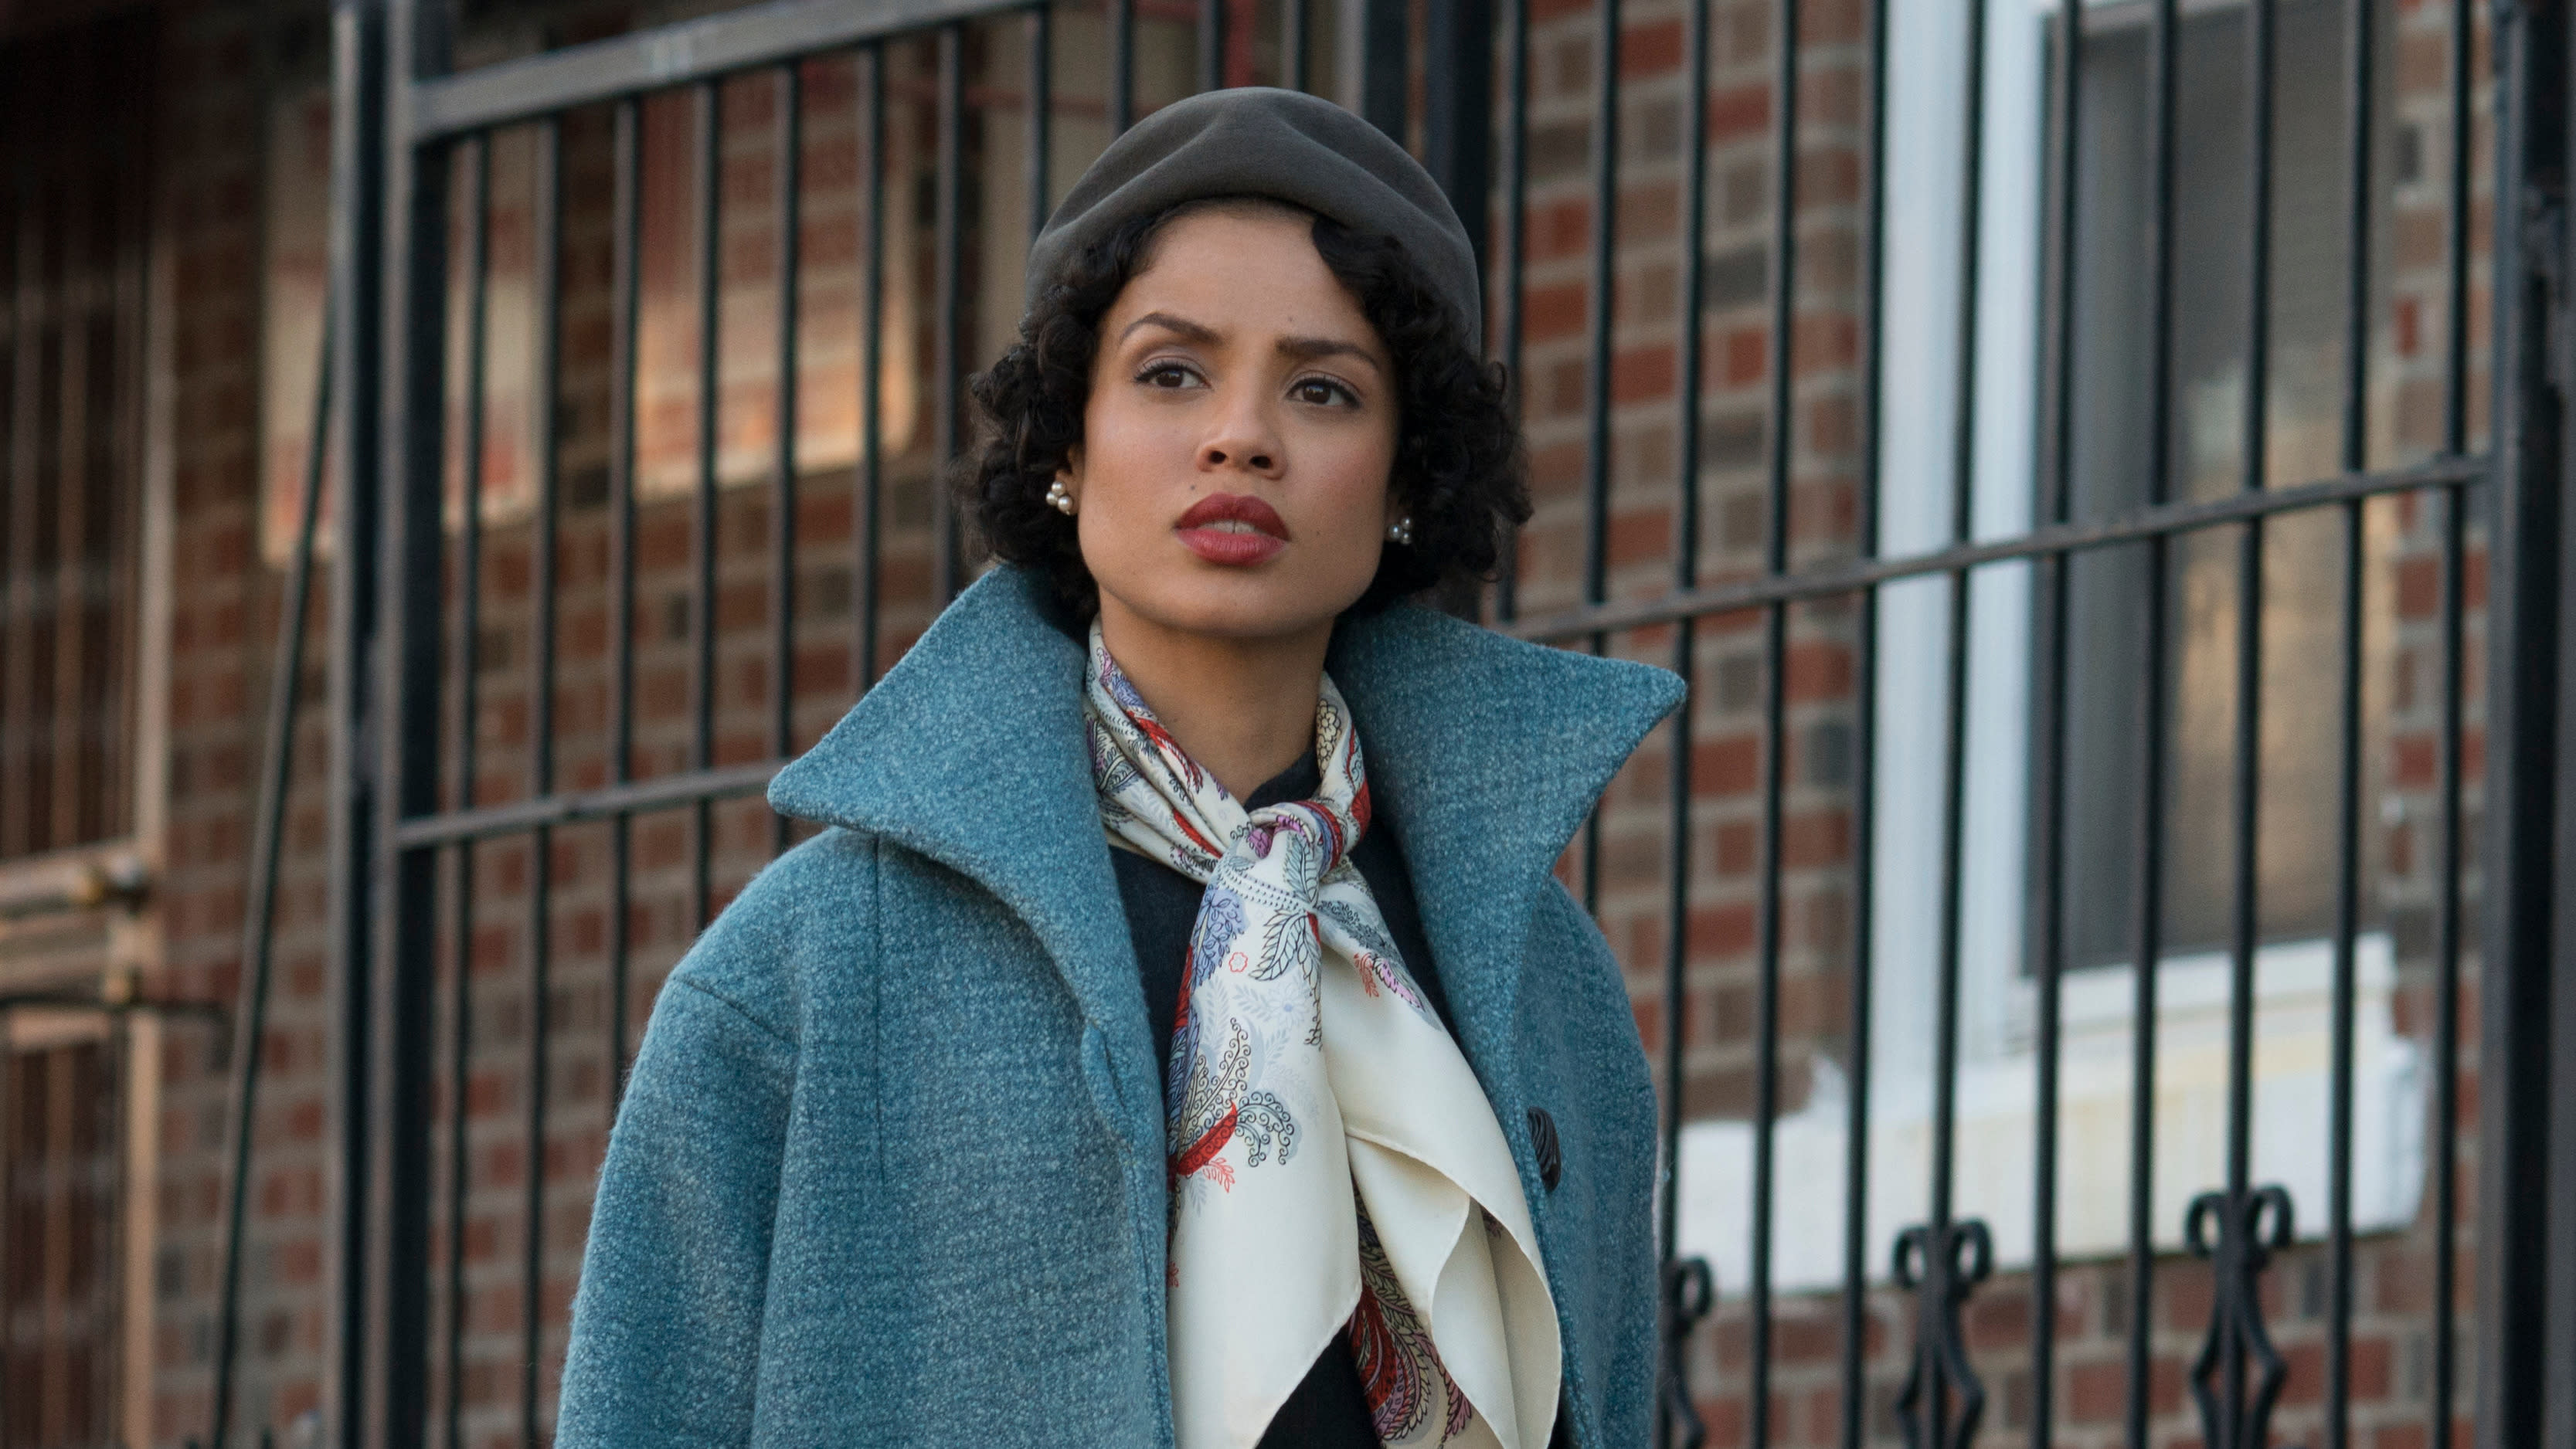 Gugu Mbatha-Raw in 'Motherless Brooklyn'. (Credit: Glen Wilson/Warner Bros)